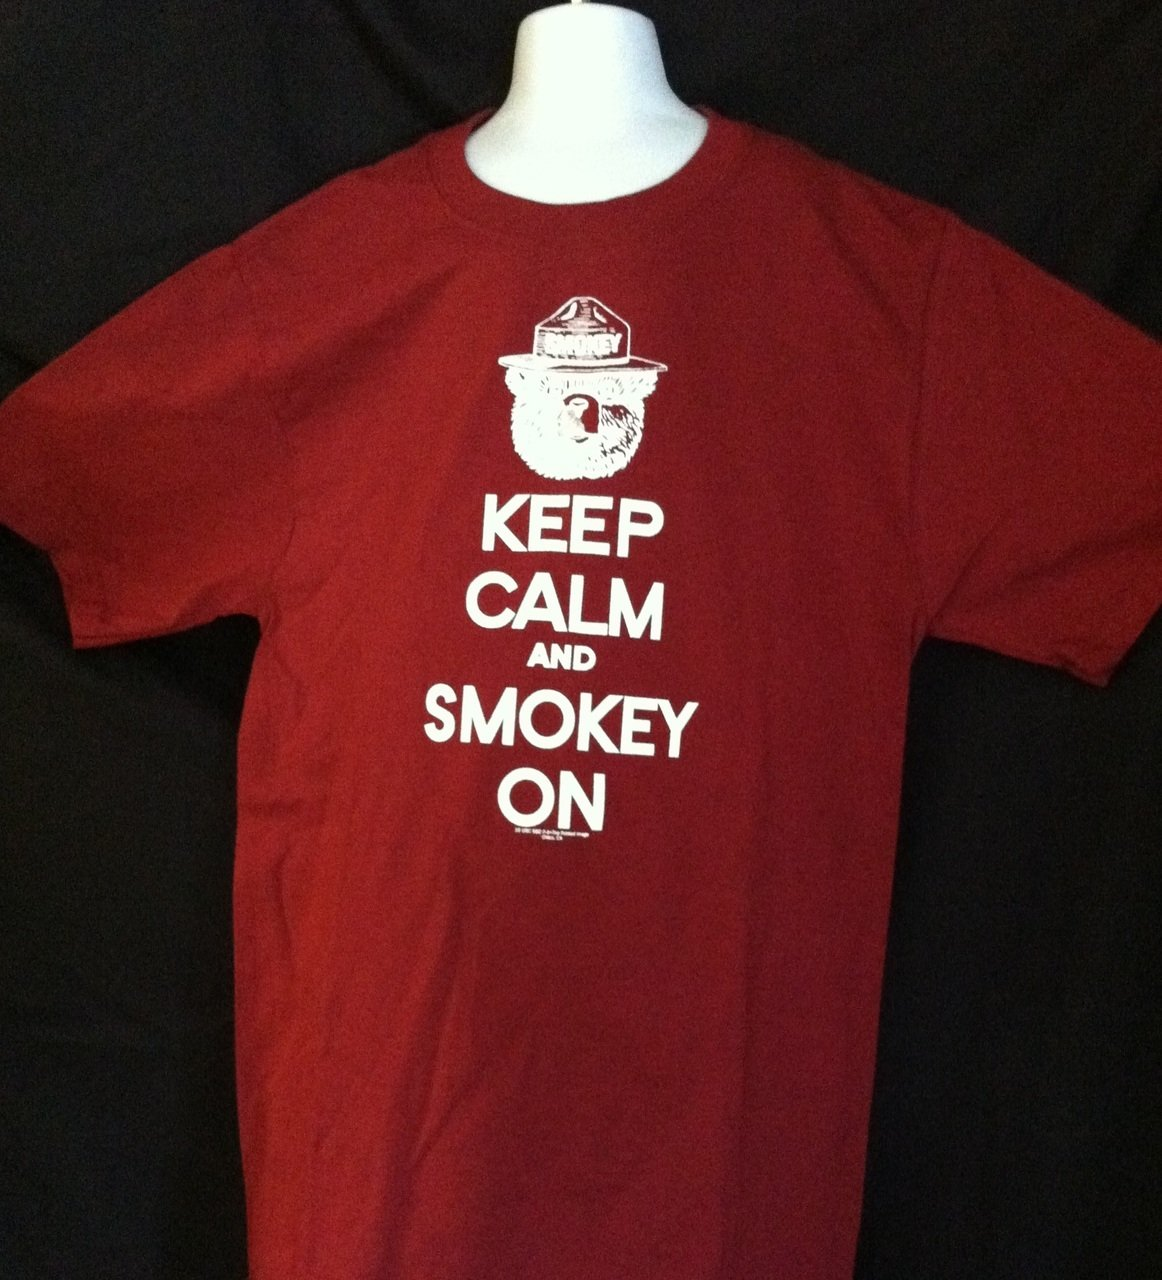 Smokey - Keep Calm and Smokey On T-shirt